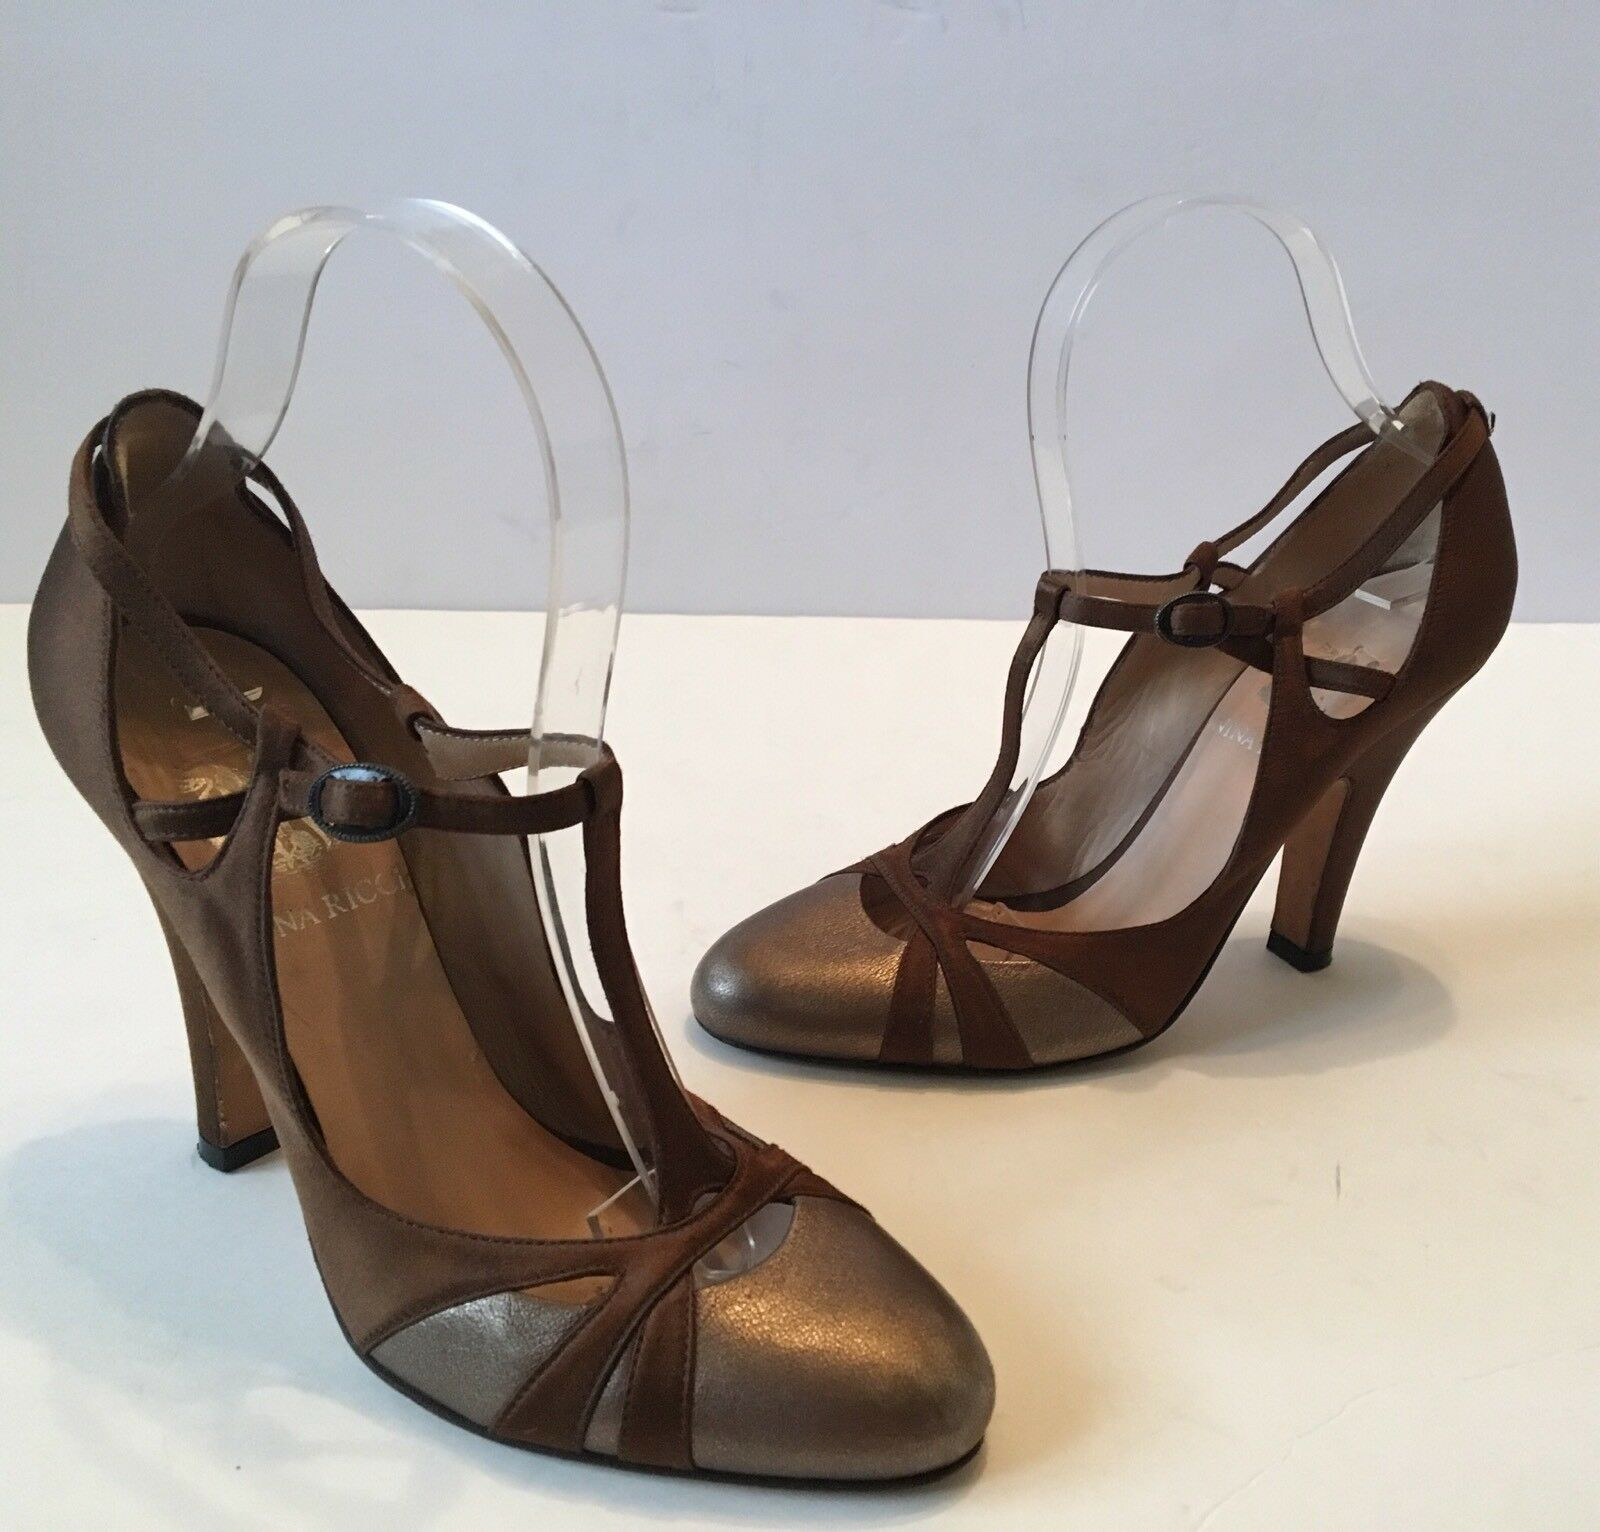 NINA RICCI BROWN SATIN BRONZE GOLD LEATHER T- STRAP HEELS PUMPS 36